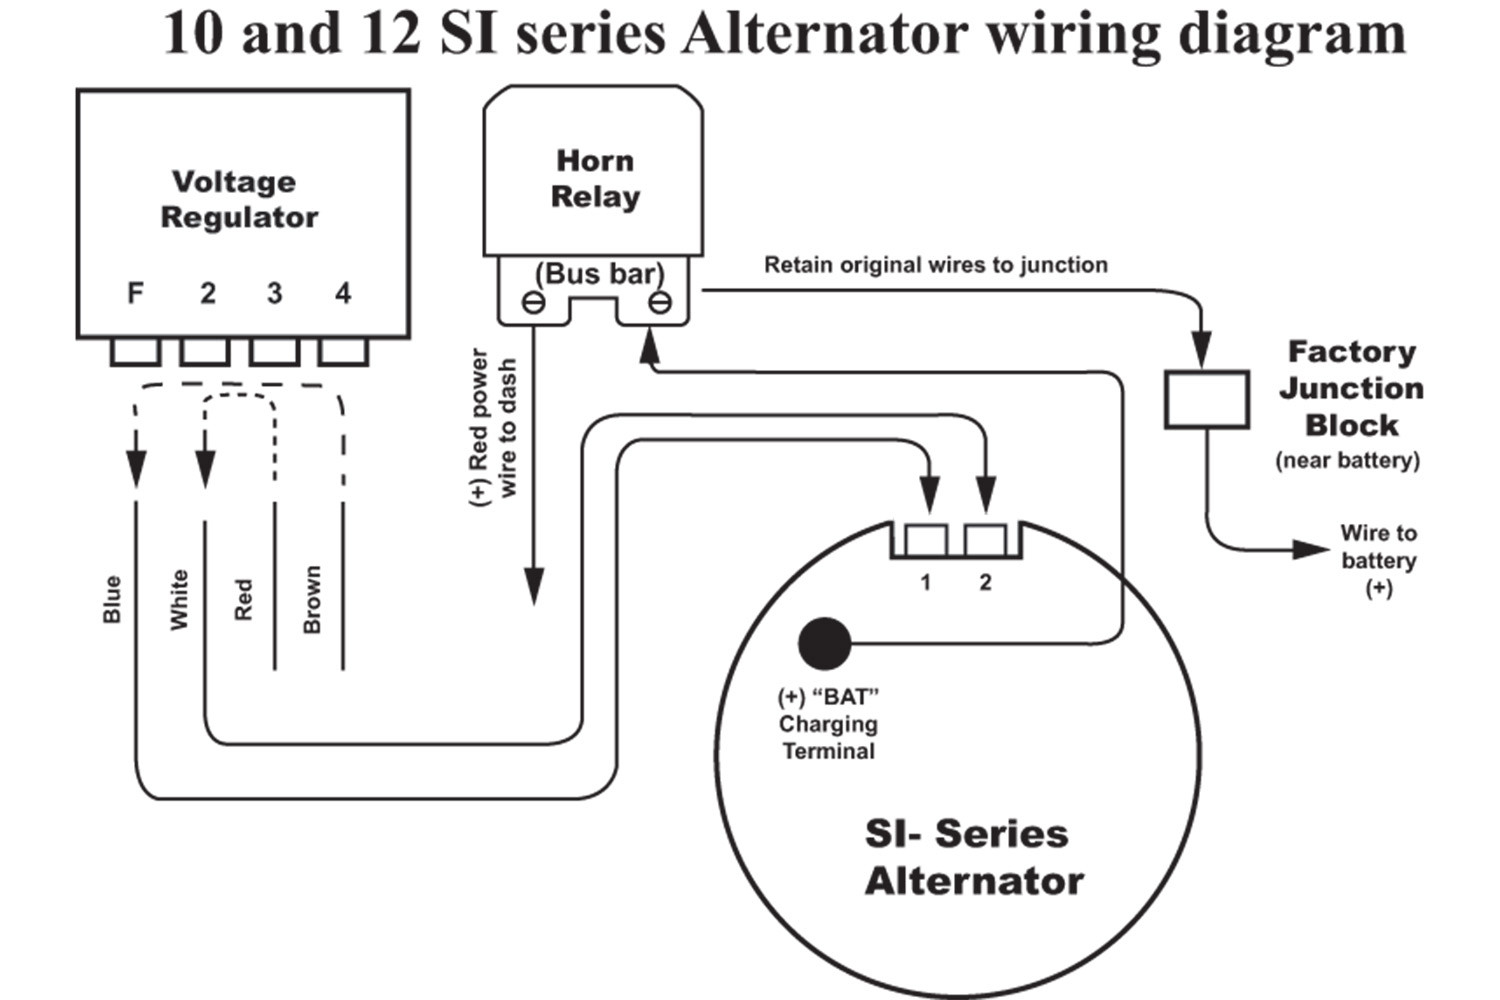 delco remy 10si alternator wiring diagram